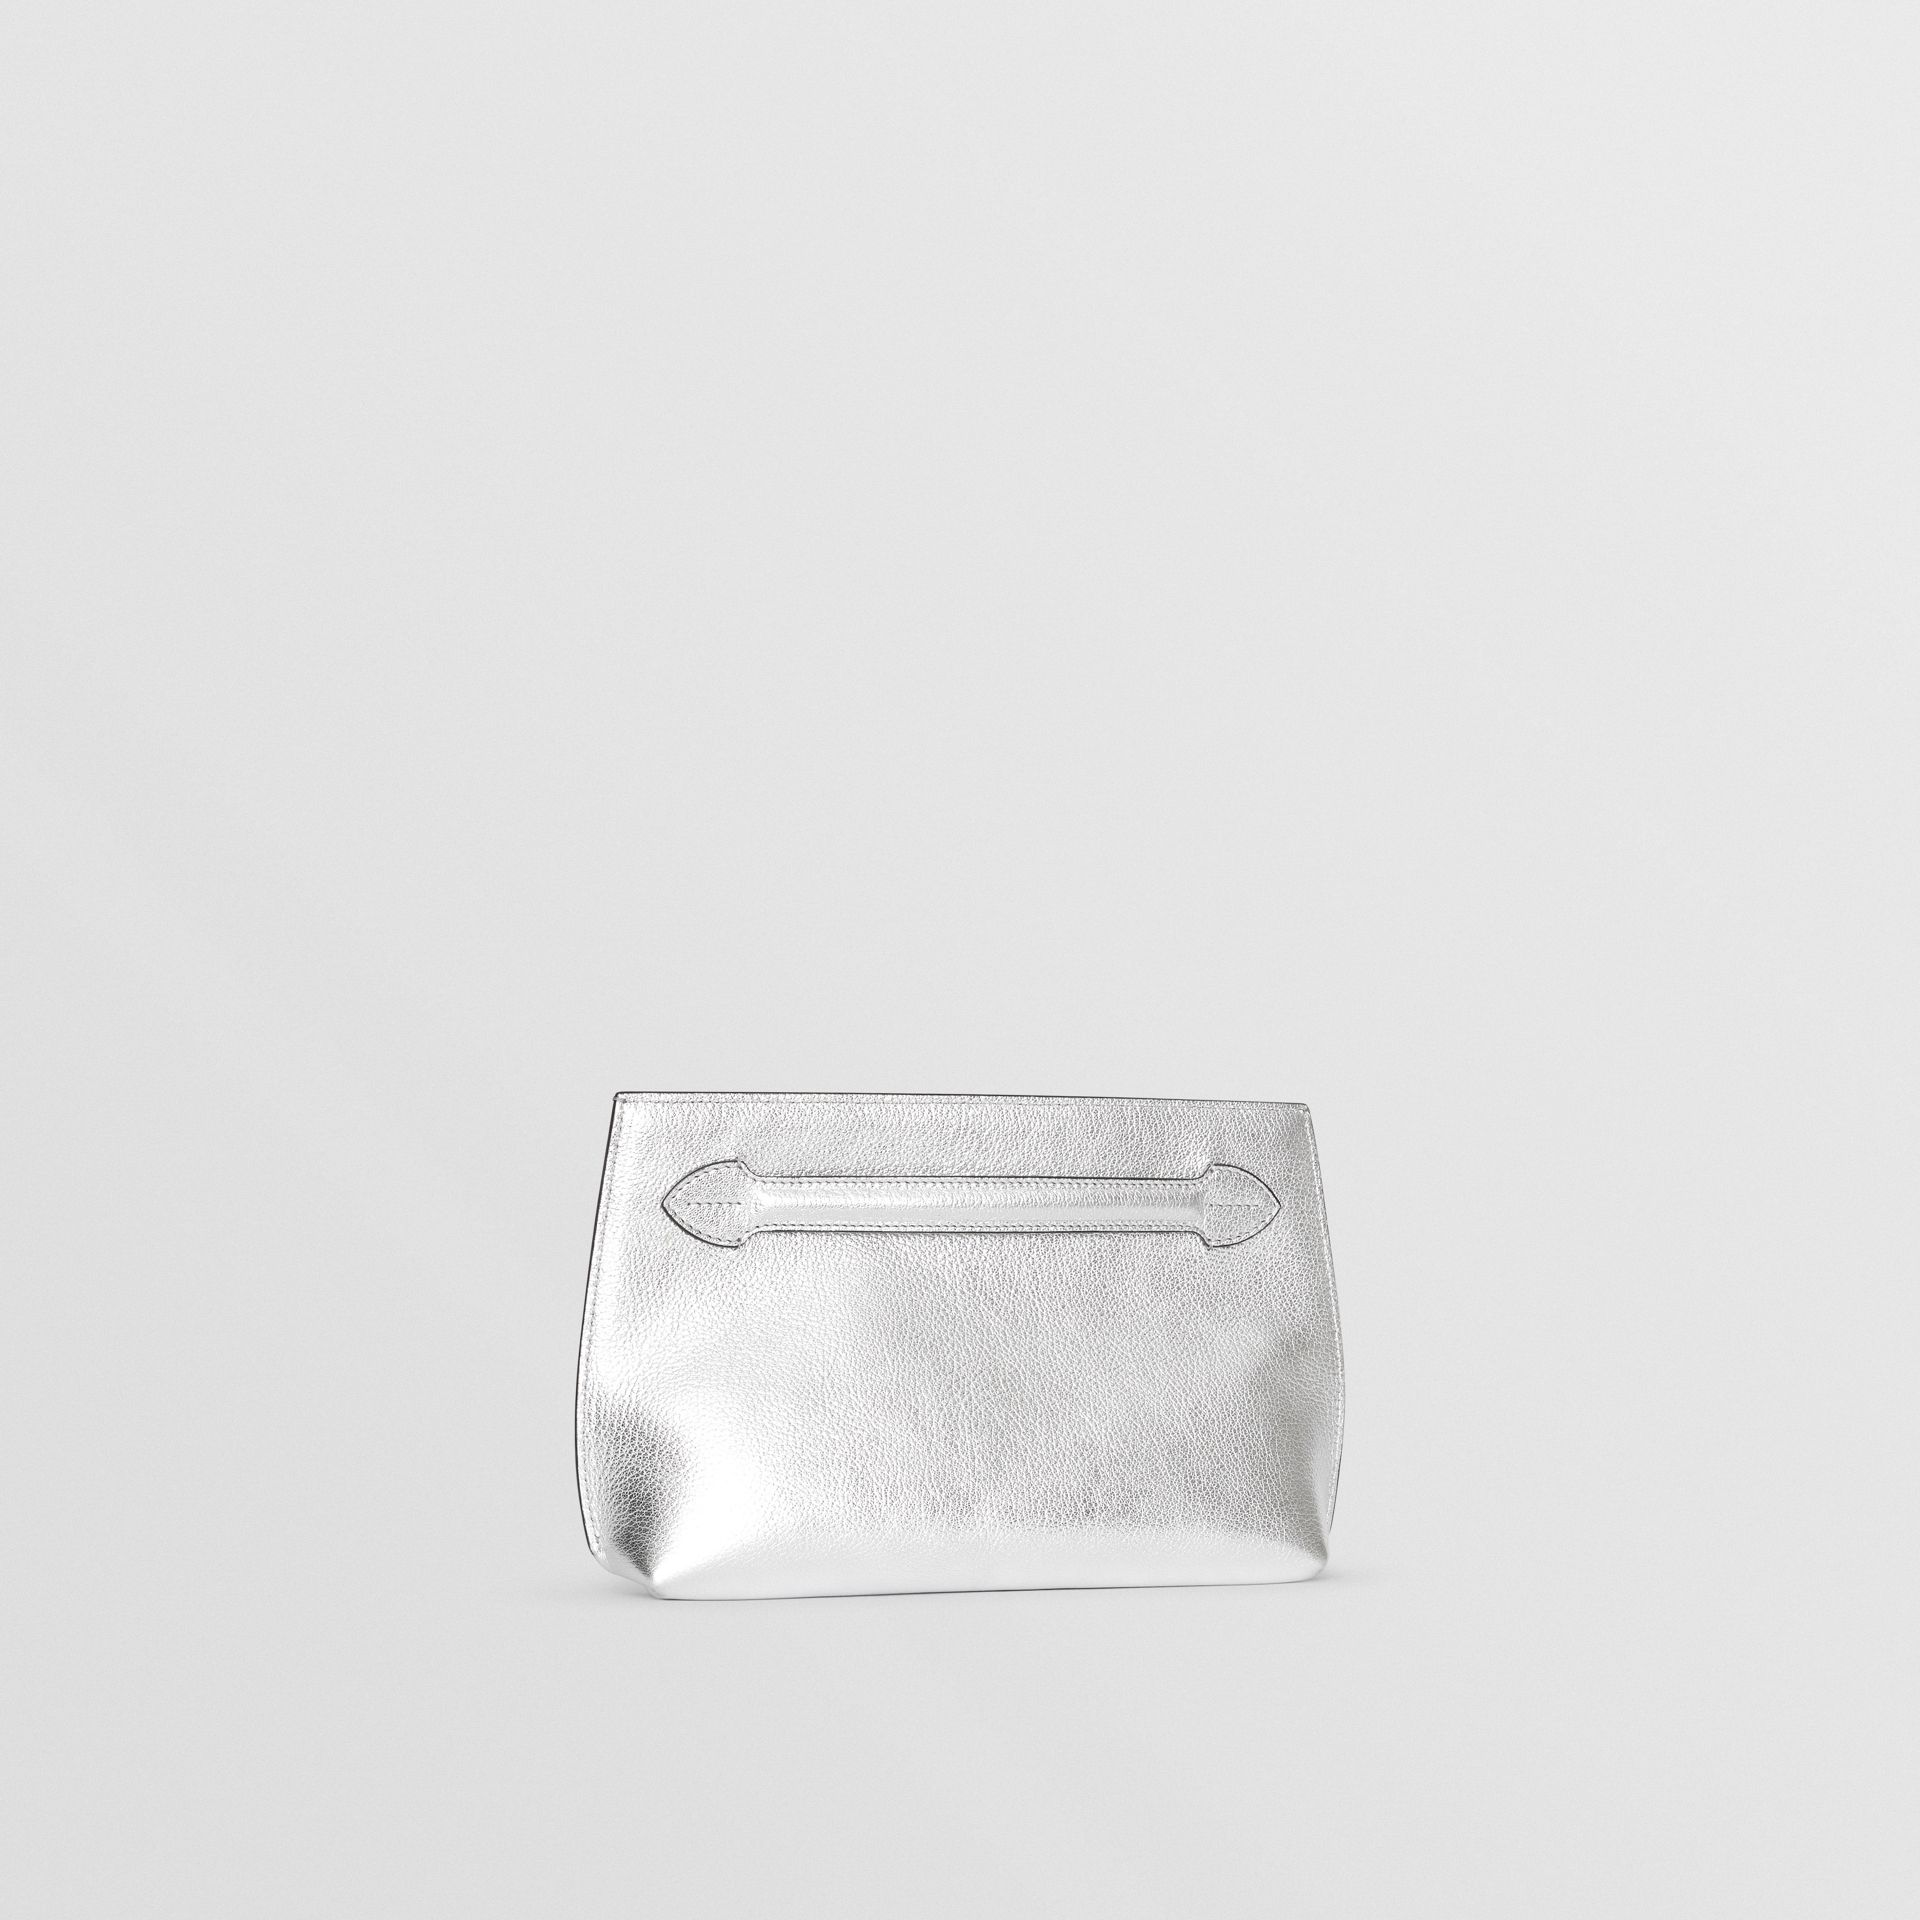 Metallic Leather Wristlet Clutch in Silver - Women | Burberry Australia - gallery image 6